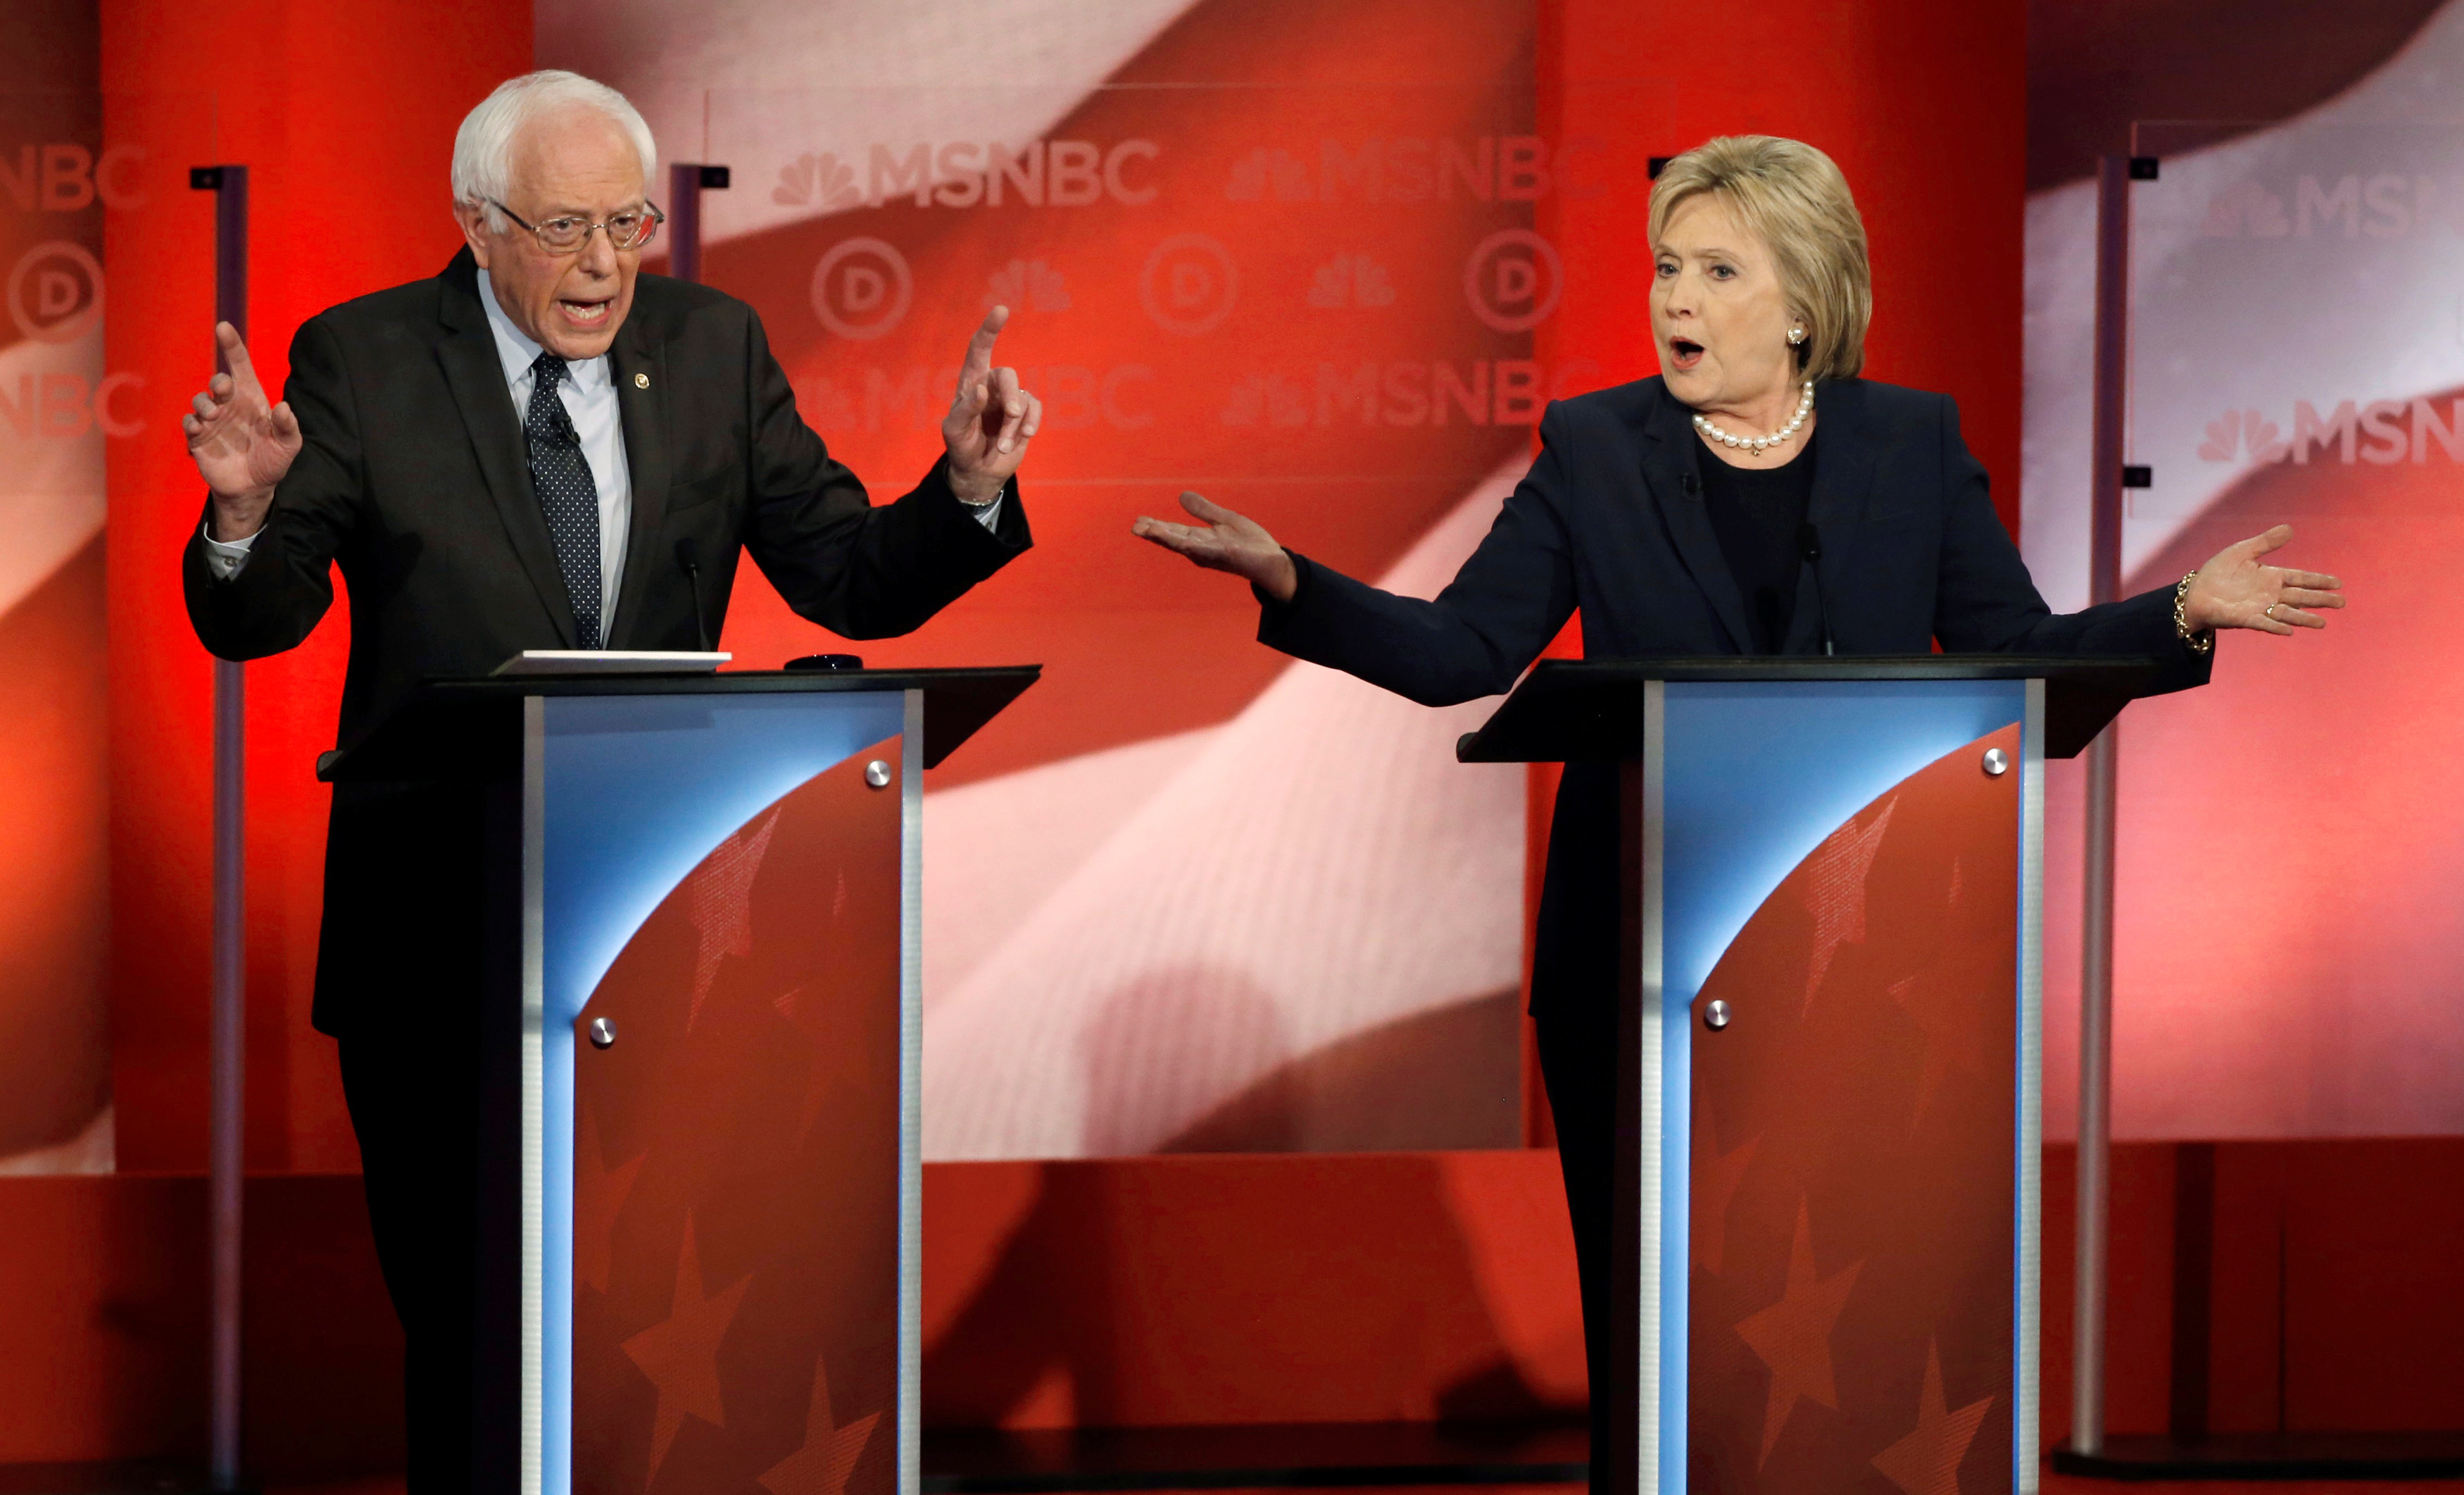 Democratic U.S. presidential candidate and Senator Bernie Sanders (L) and former Secretary of State Hillary Clinton speak simultaneously as they discuss issues during the Democratic presidential candidates debate sponsored by MSNBC at the University of New Hampshire in Durham, New Hampshire, U.S., February 4, 2016. REUTERS/Mike Segar /File Photo